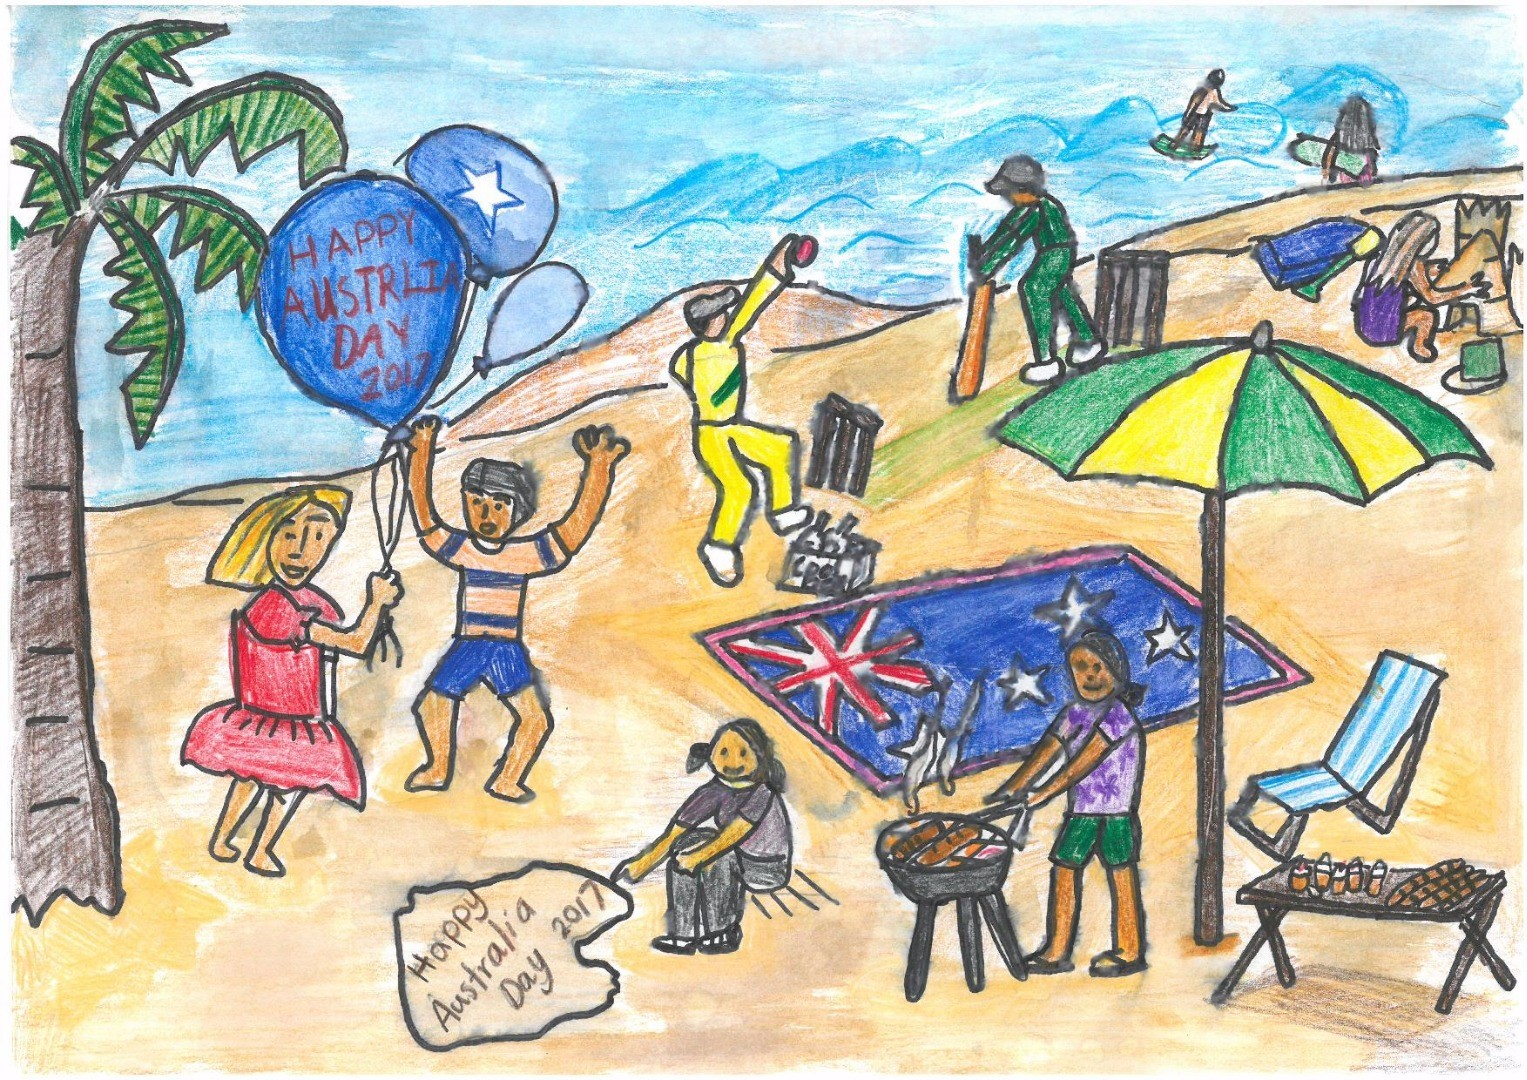 2017 Celebrate Australia Primary School Art Competition Third Place Section One: Happy Australia Day 2017 by Adayat Anis